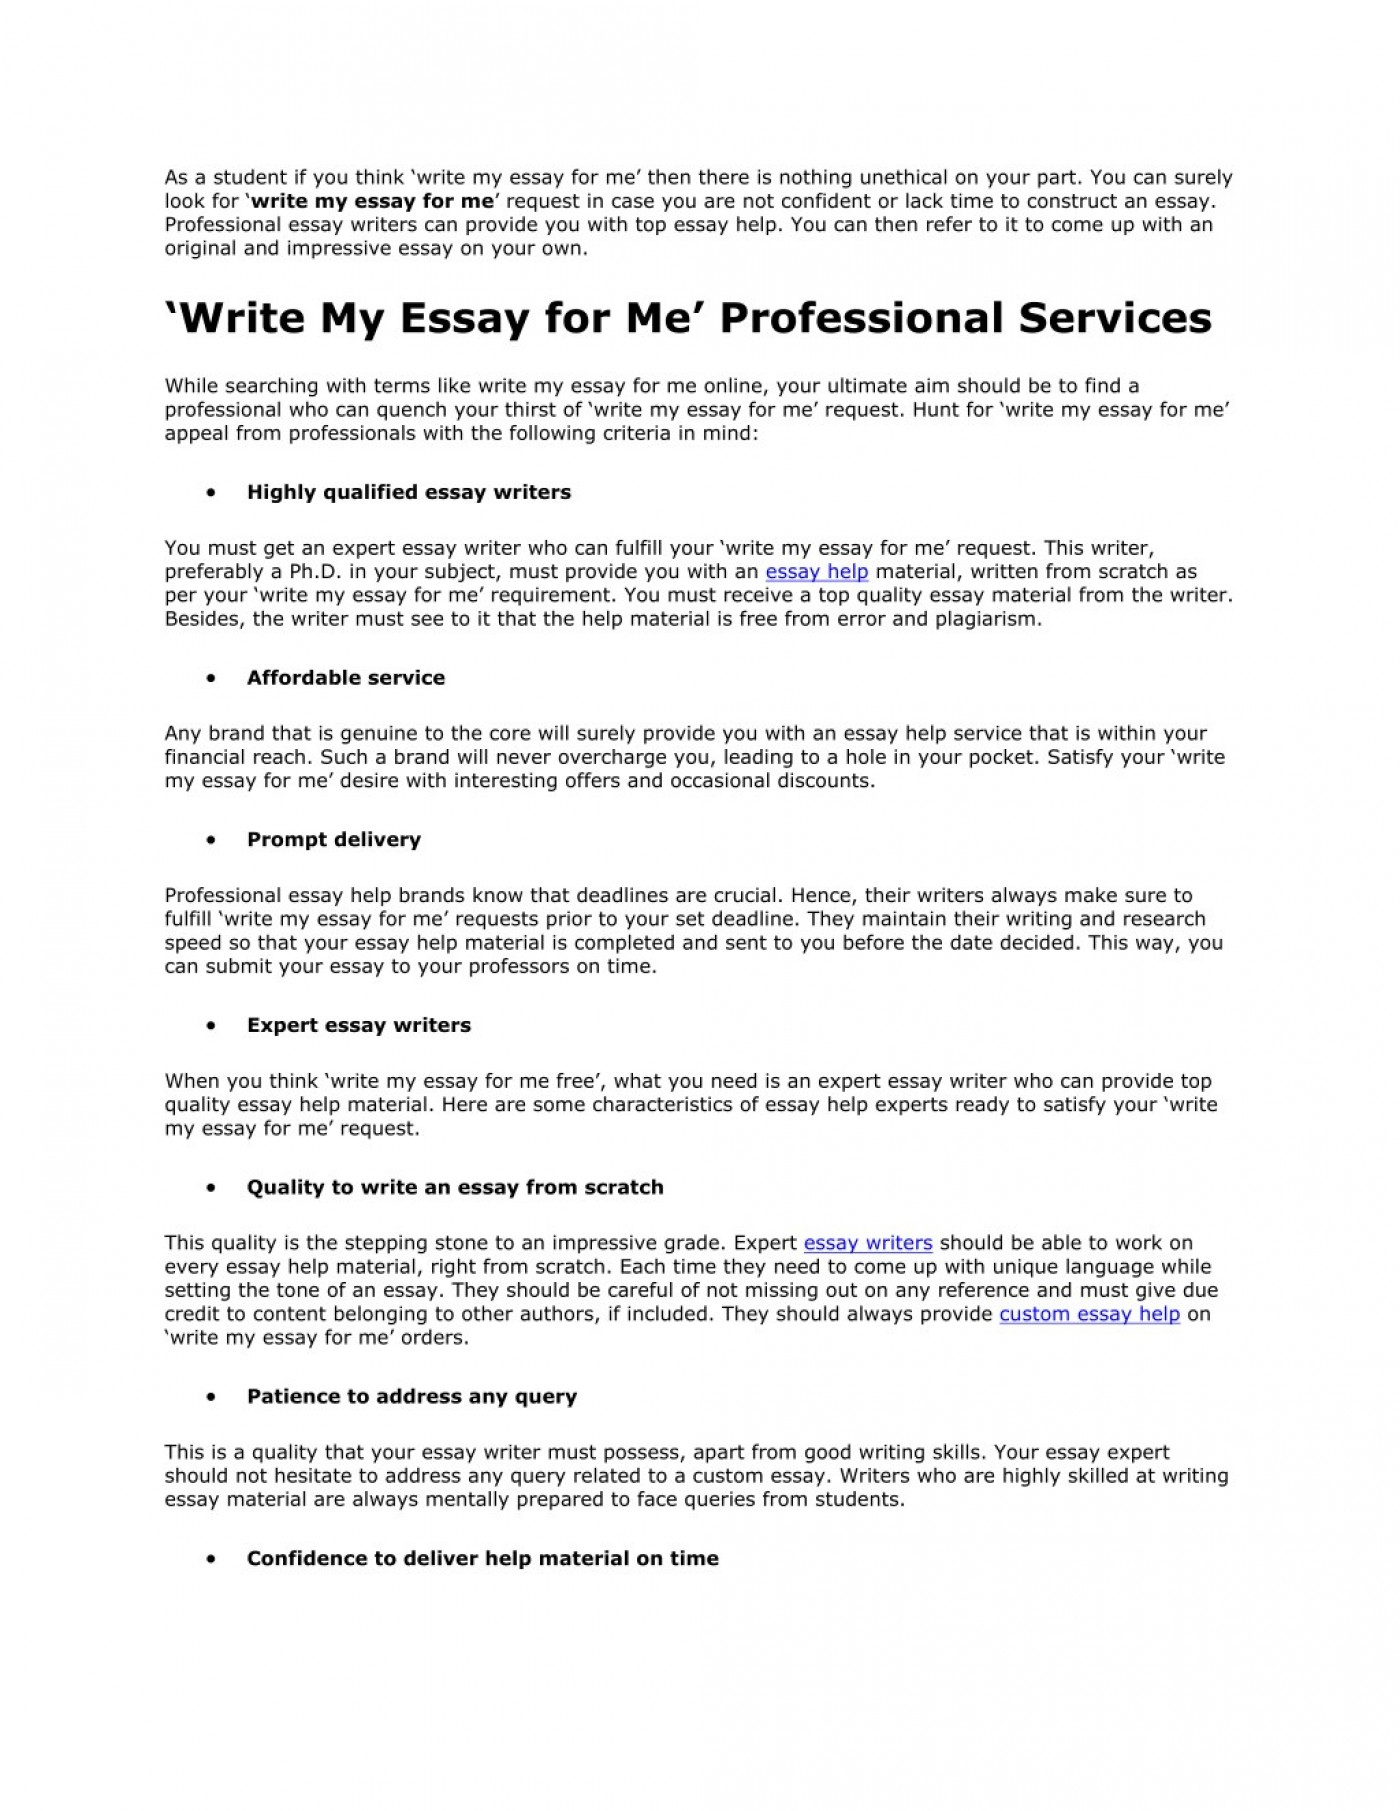 017 Write My Essay For Me Example As Student If You Think Surprising Free Online Cheap App 1400